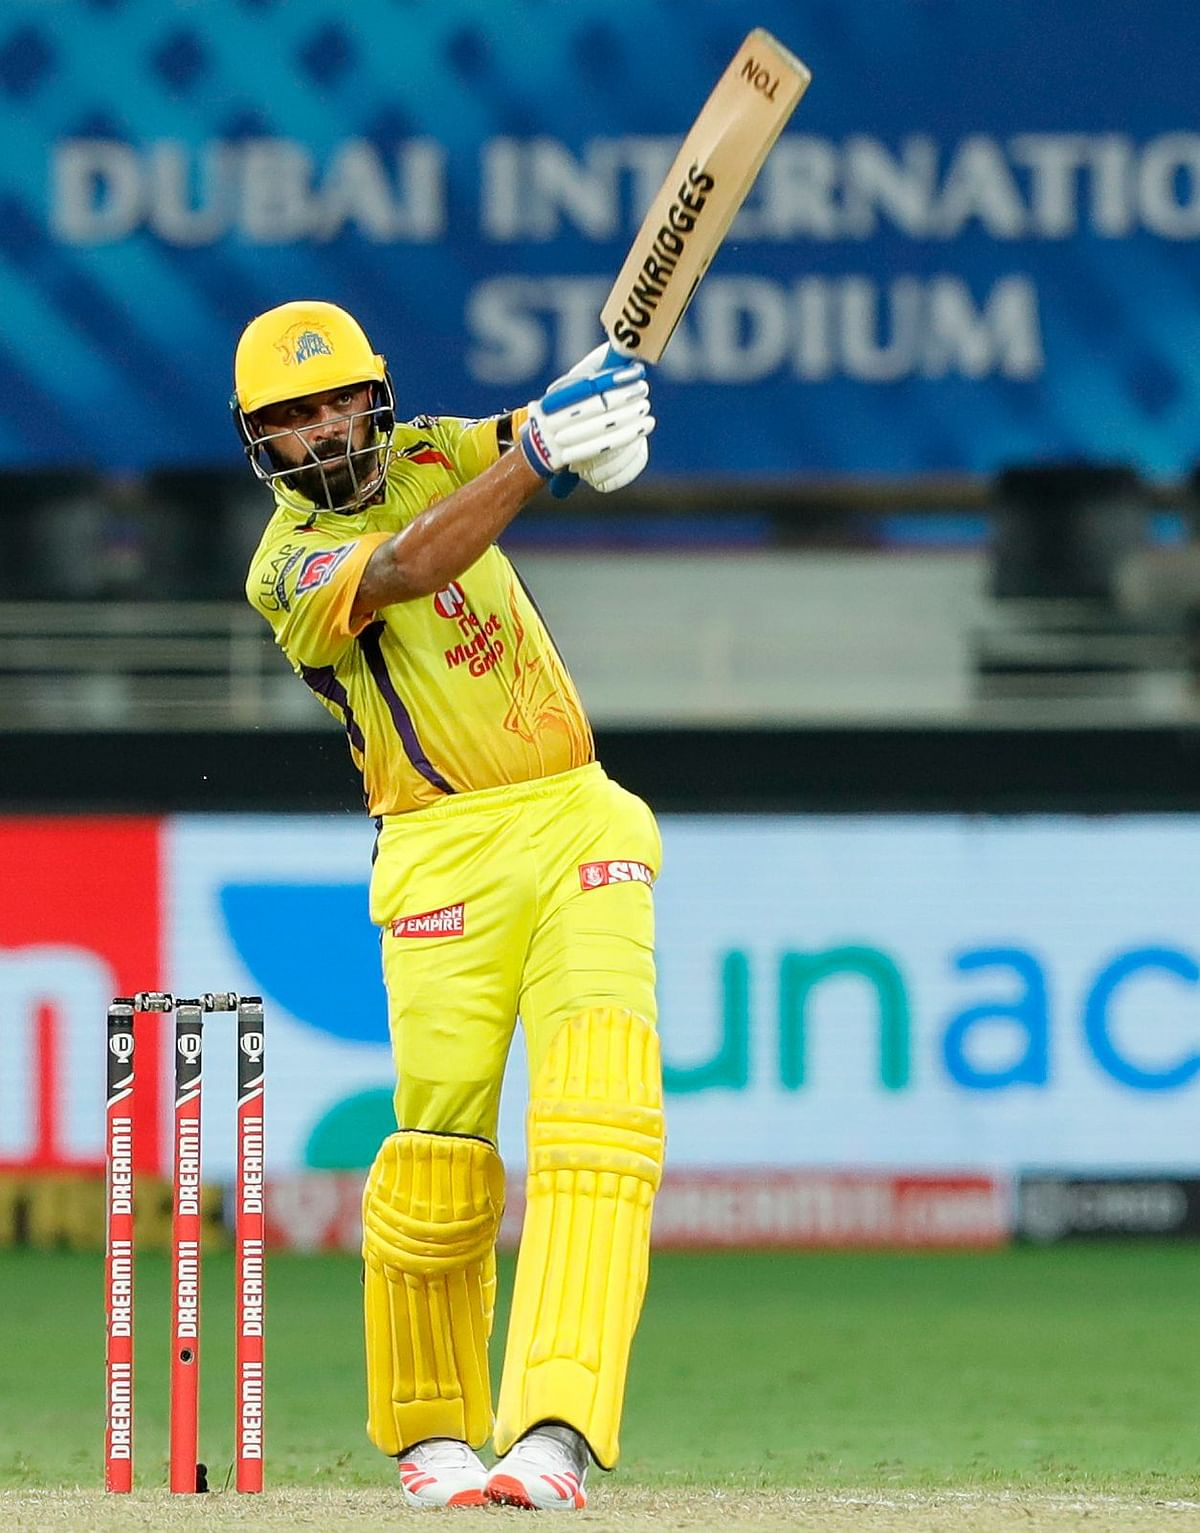 Murali Vijay got to play 3 games for CSK, scored just 32 runs at a strike rate of 74.